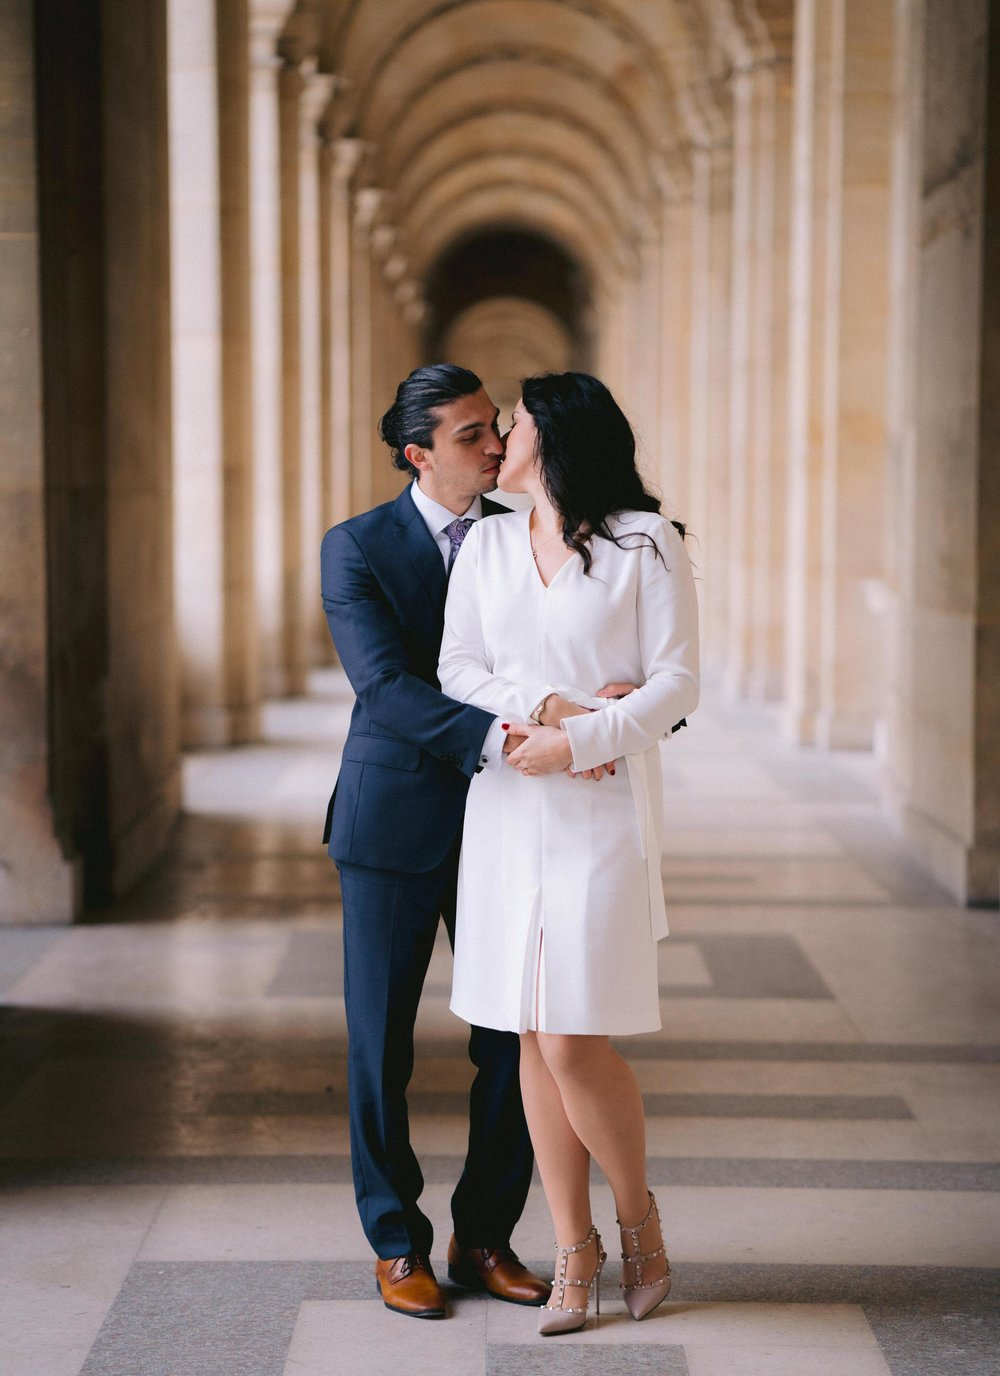 beautiful engagement photo session at the louvre museum in paris france